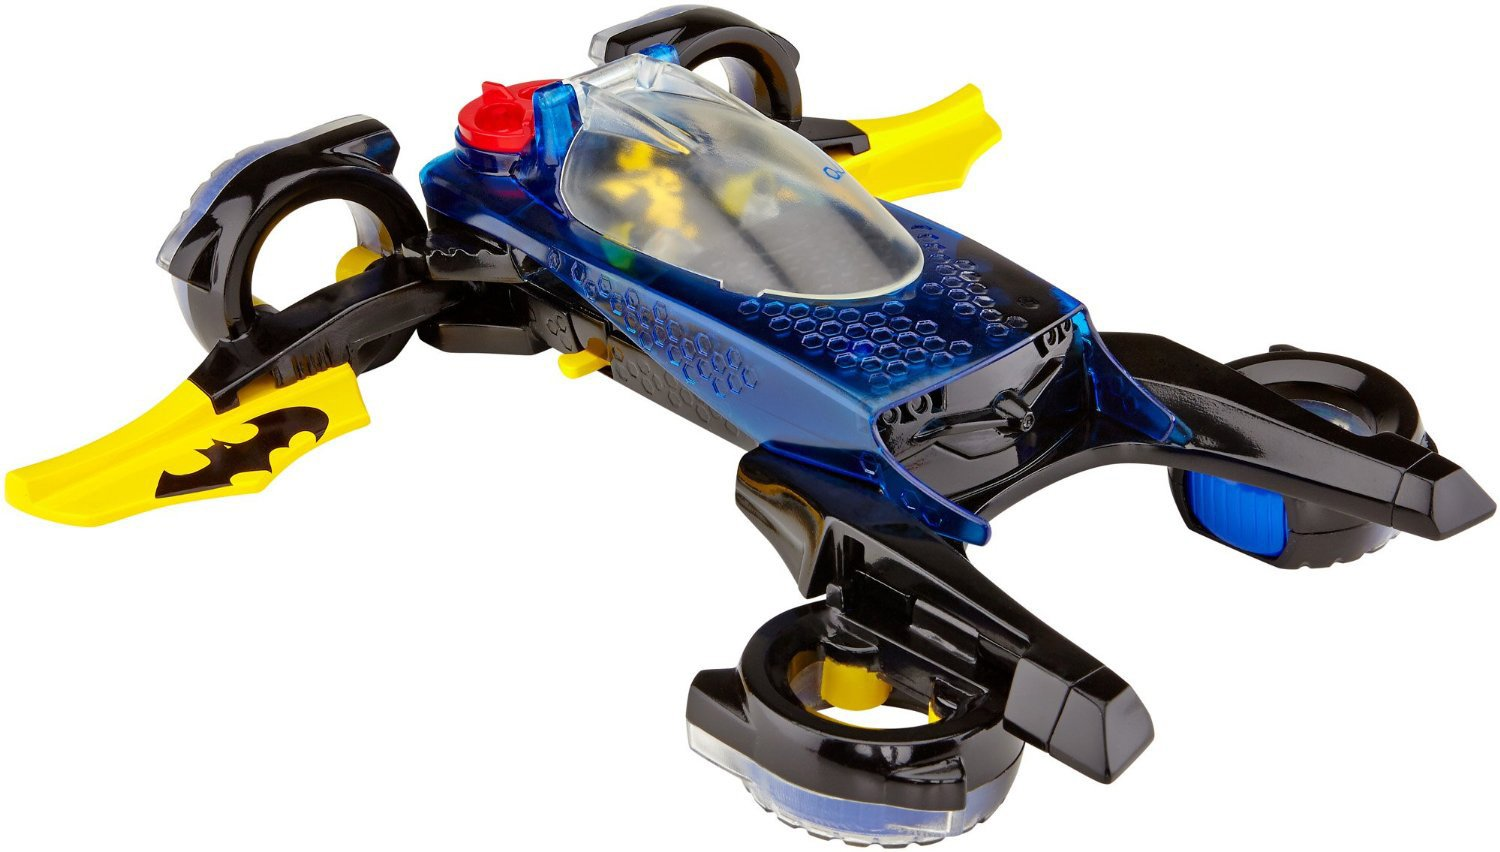 Fisher-Price Imaginext DC Super Friends, Transforming Batmobile Fisher Price Mattel CLP22